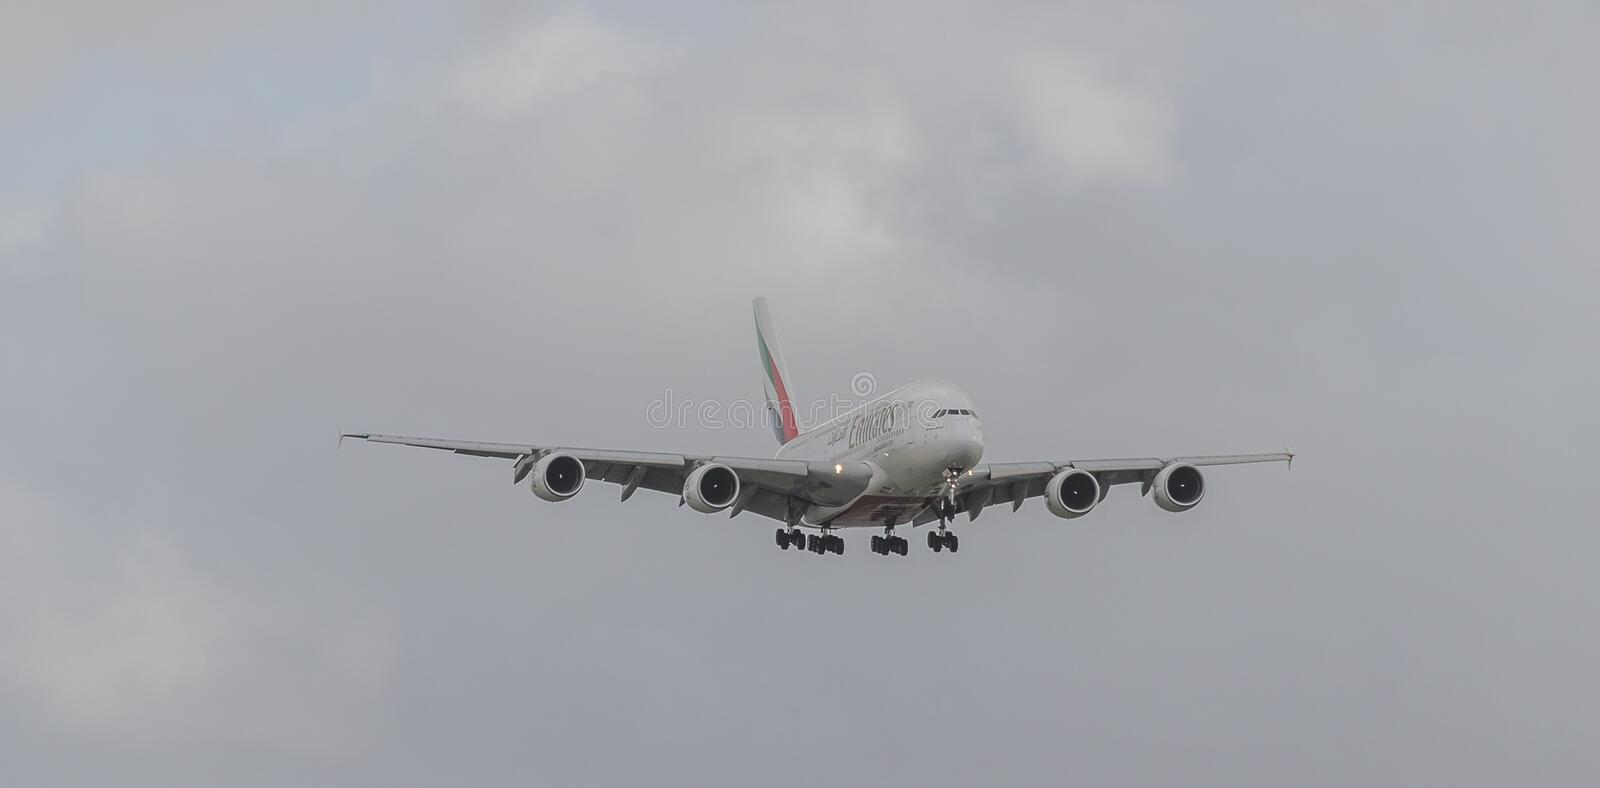 Emirates Airways A380 jet landing at Heathrow. Emirates Airways airbus A380 jet landing at Heathrow, october 2017 landing Gear down stock images